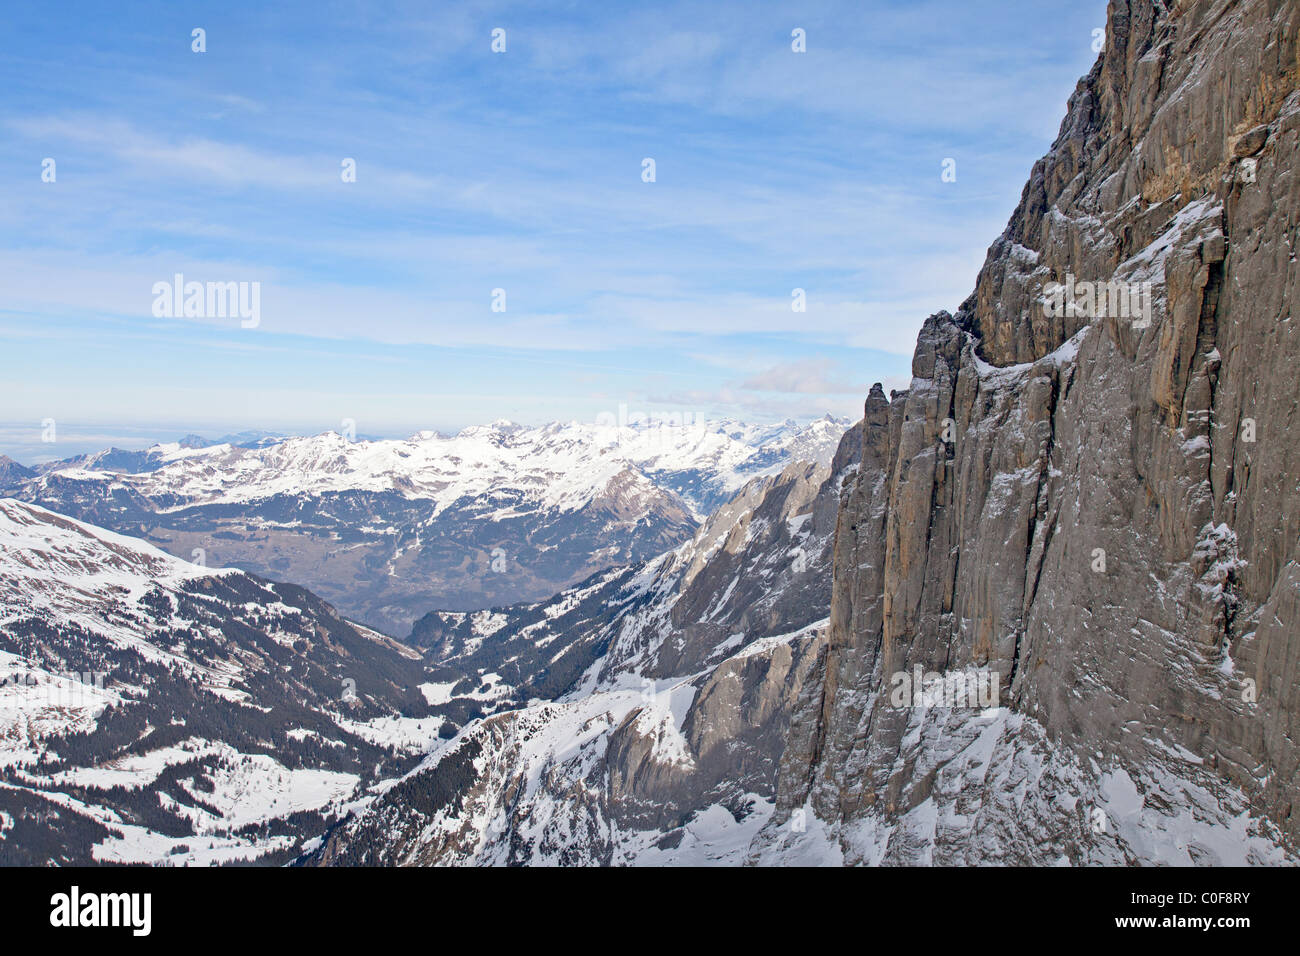 North face of Mt Eiger (R) seen from a helicopter, Berner Oberland, Switzerland - Stock Image